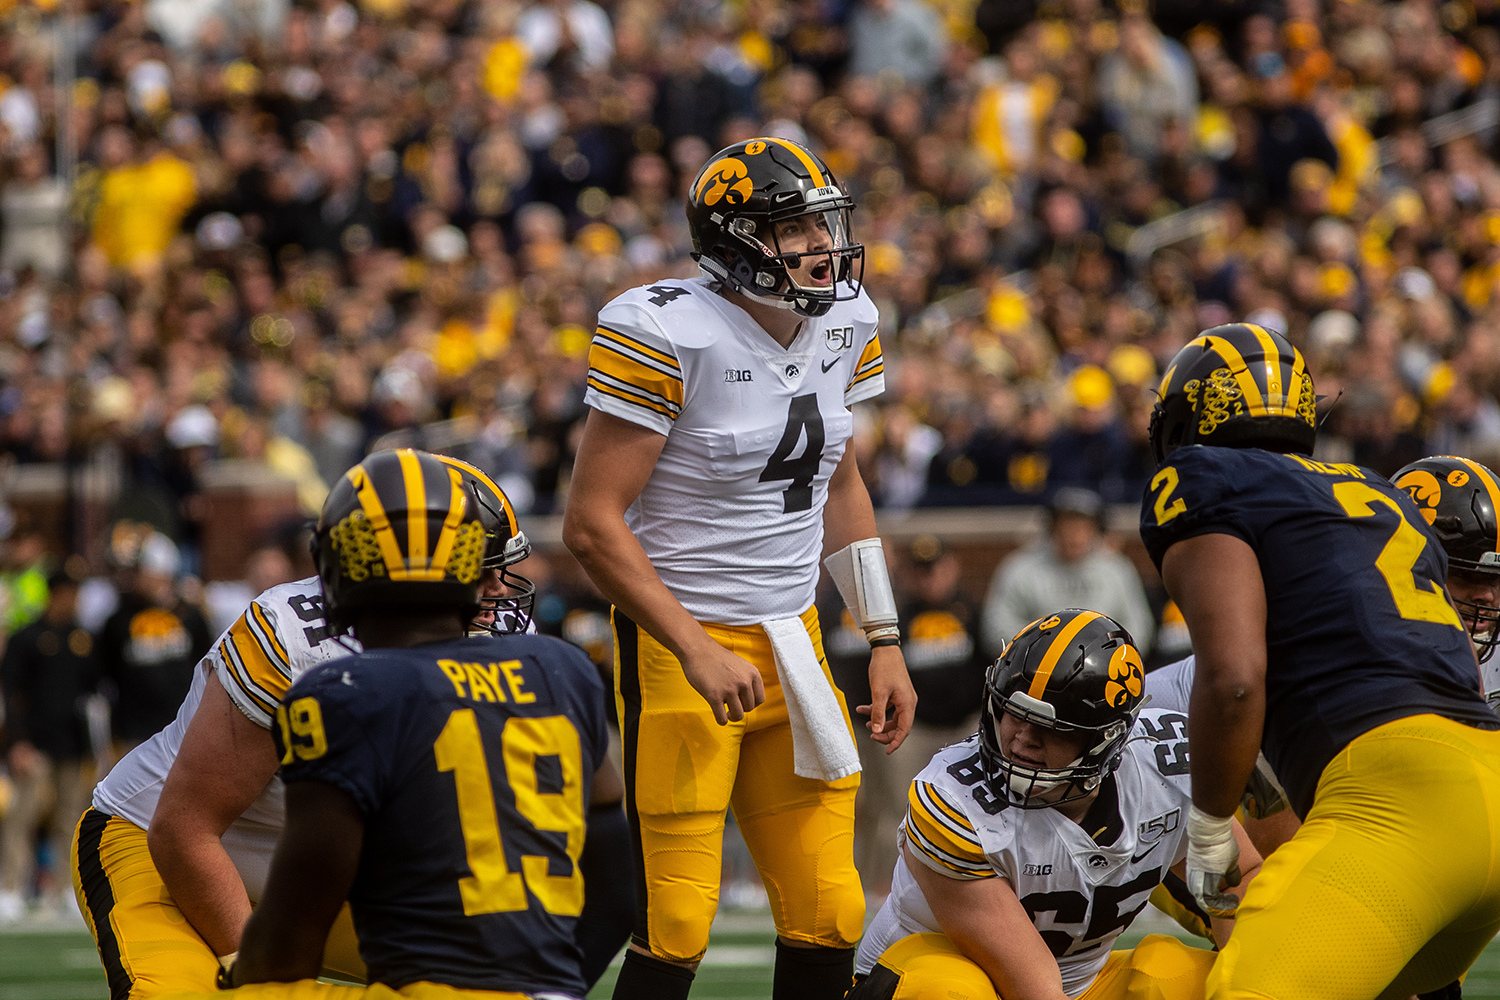 Iowa quarterback Nate Stanley yells out before a play during a football game between Iowa and Michigan in Ann Arbor on Saturday, October 5, 2019. The Wolverines defeated the Hawkeyes 10-3.